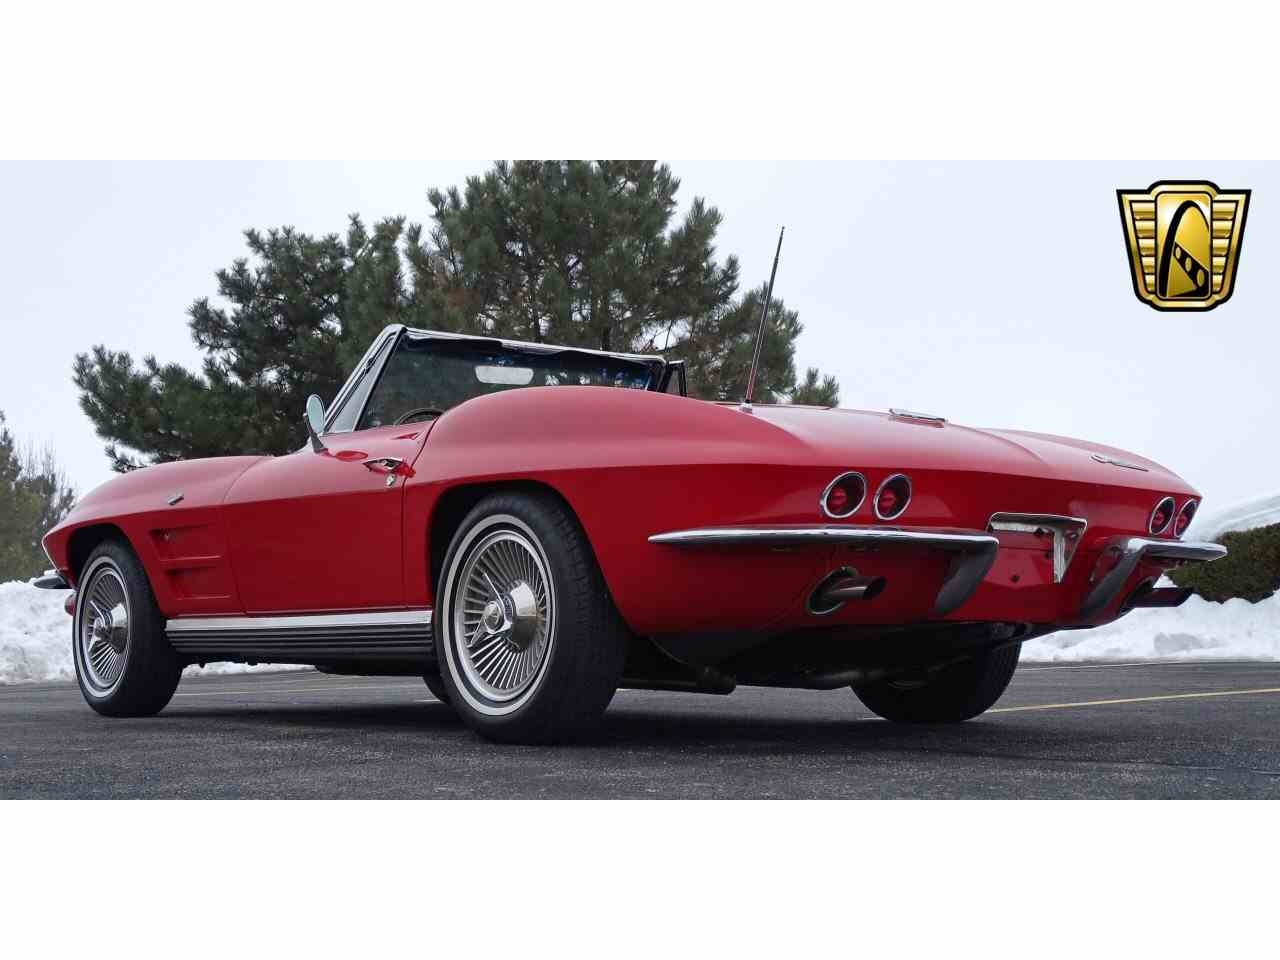 Large Picture of 1964 Chevrolet Corvette located in Illinois Offered by Gateway Classic Cars - Chicago - KEXN